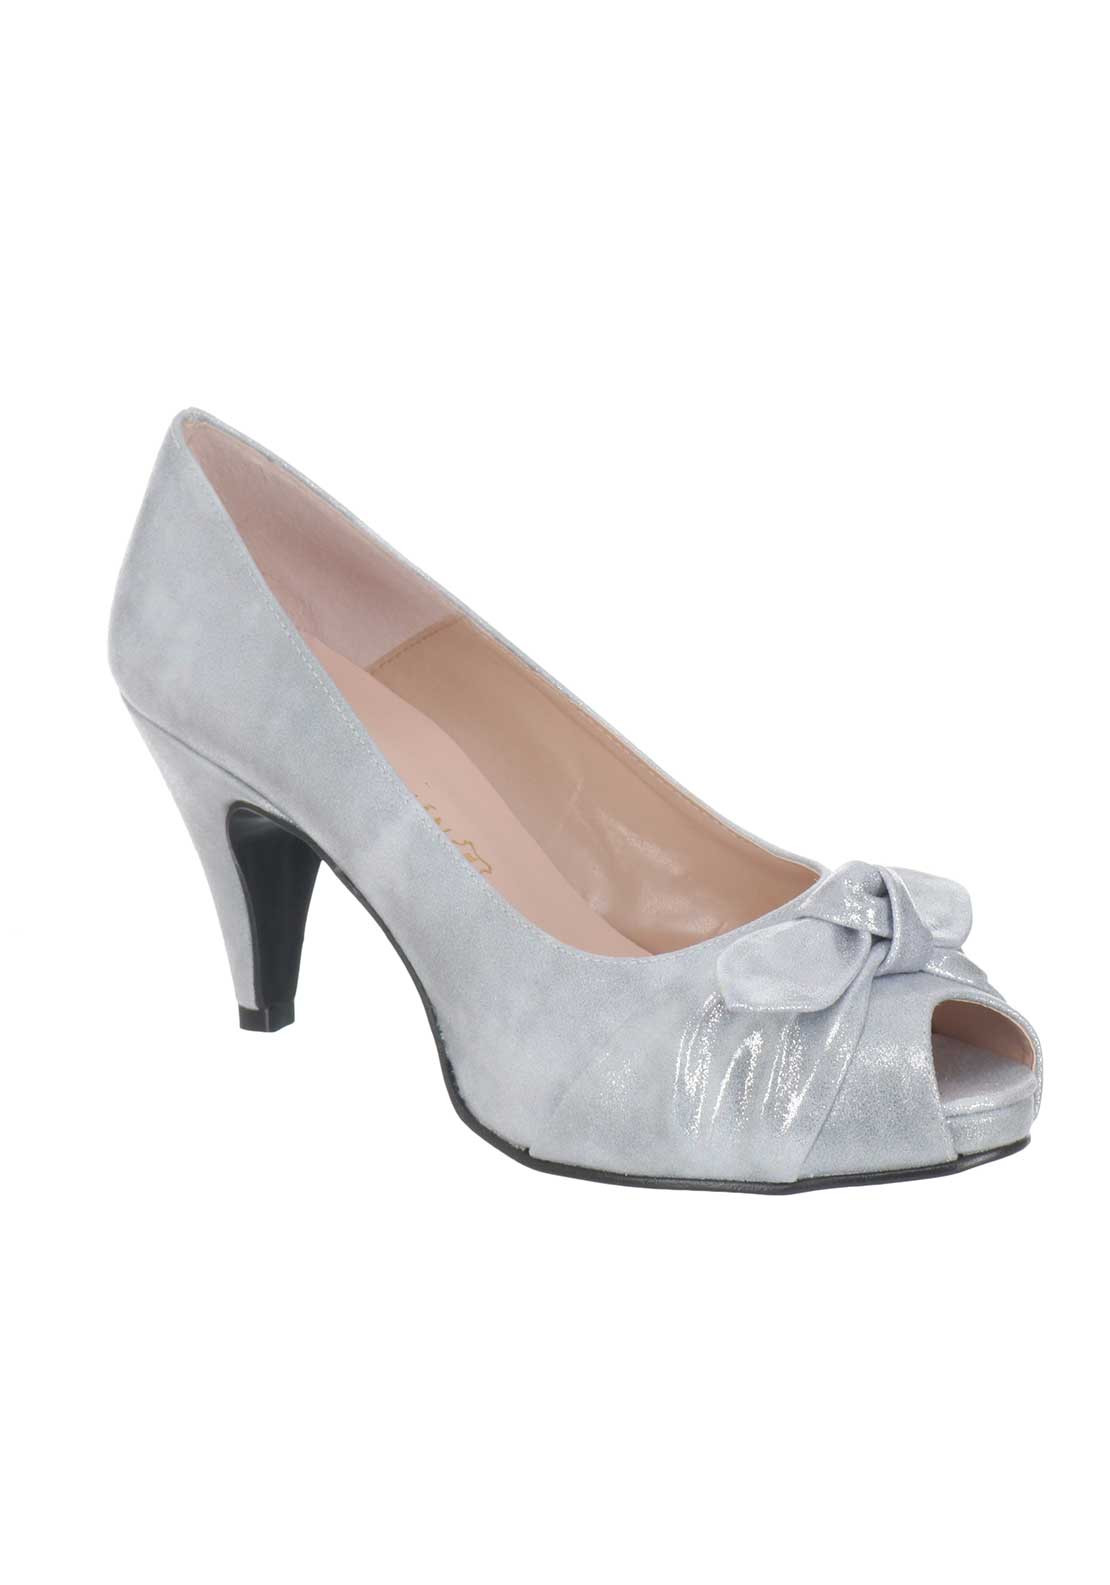 Silver Satin Peep Toe Fashion Dresses